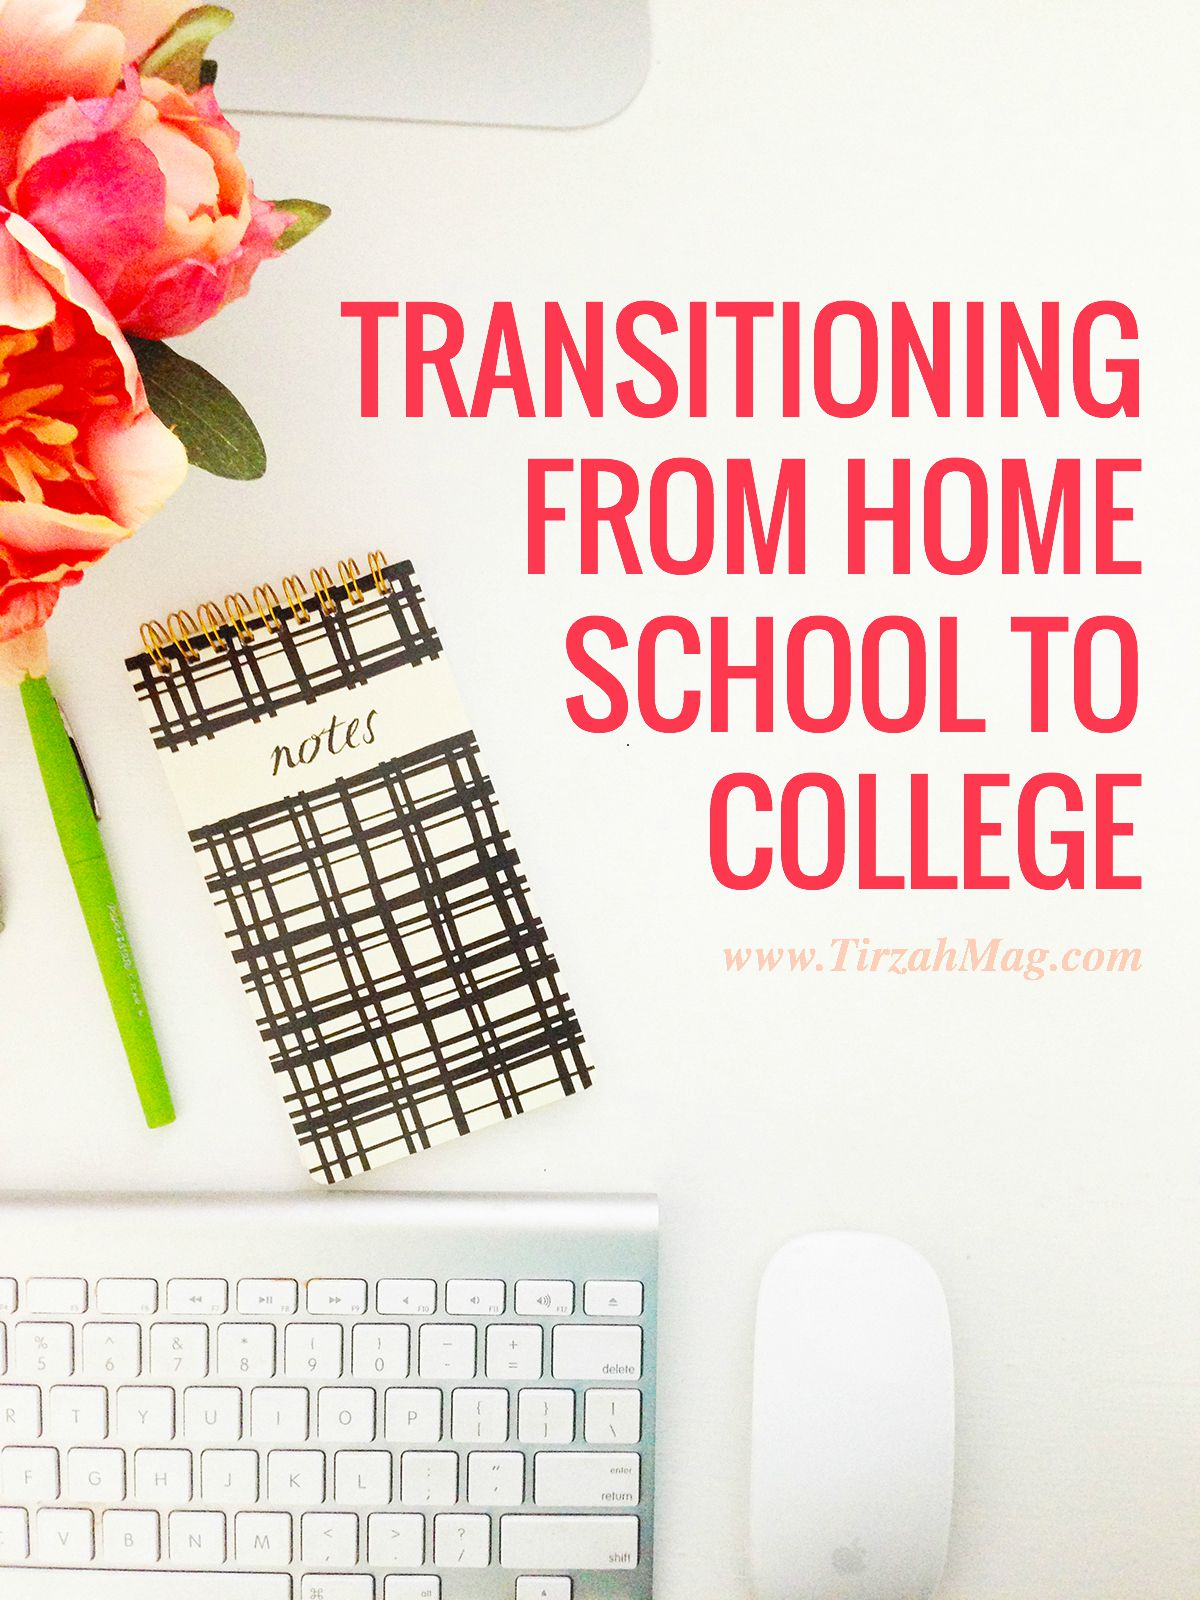 Transitioning from home school to college